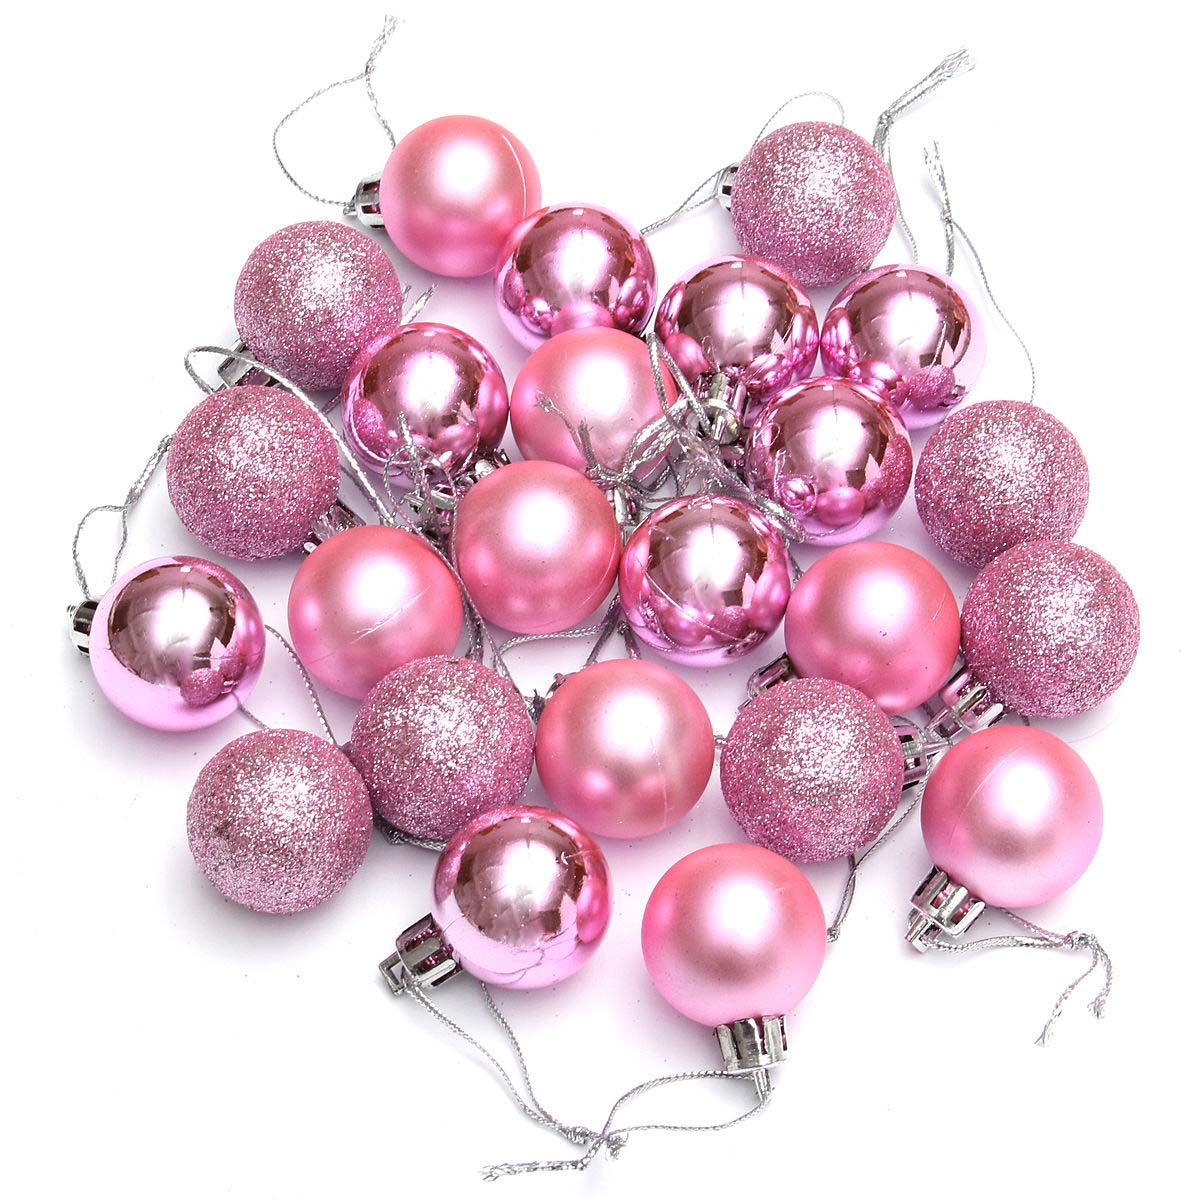 Hot 24Pcs Chic Christmas Baubles Tree Plain Glitter XMAS Ornament Ball Decoration Pink-in Party DIY Decorations from Home & Garden